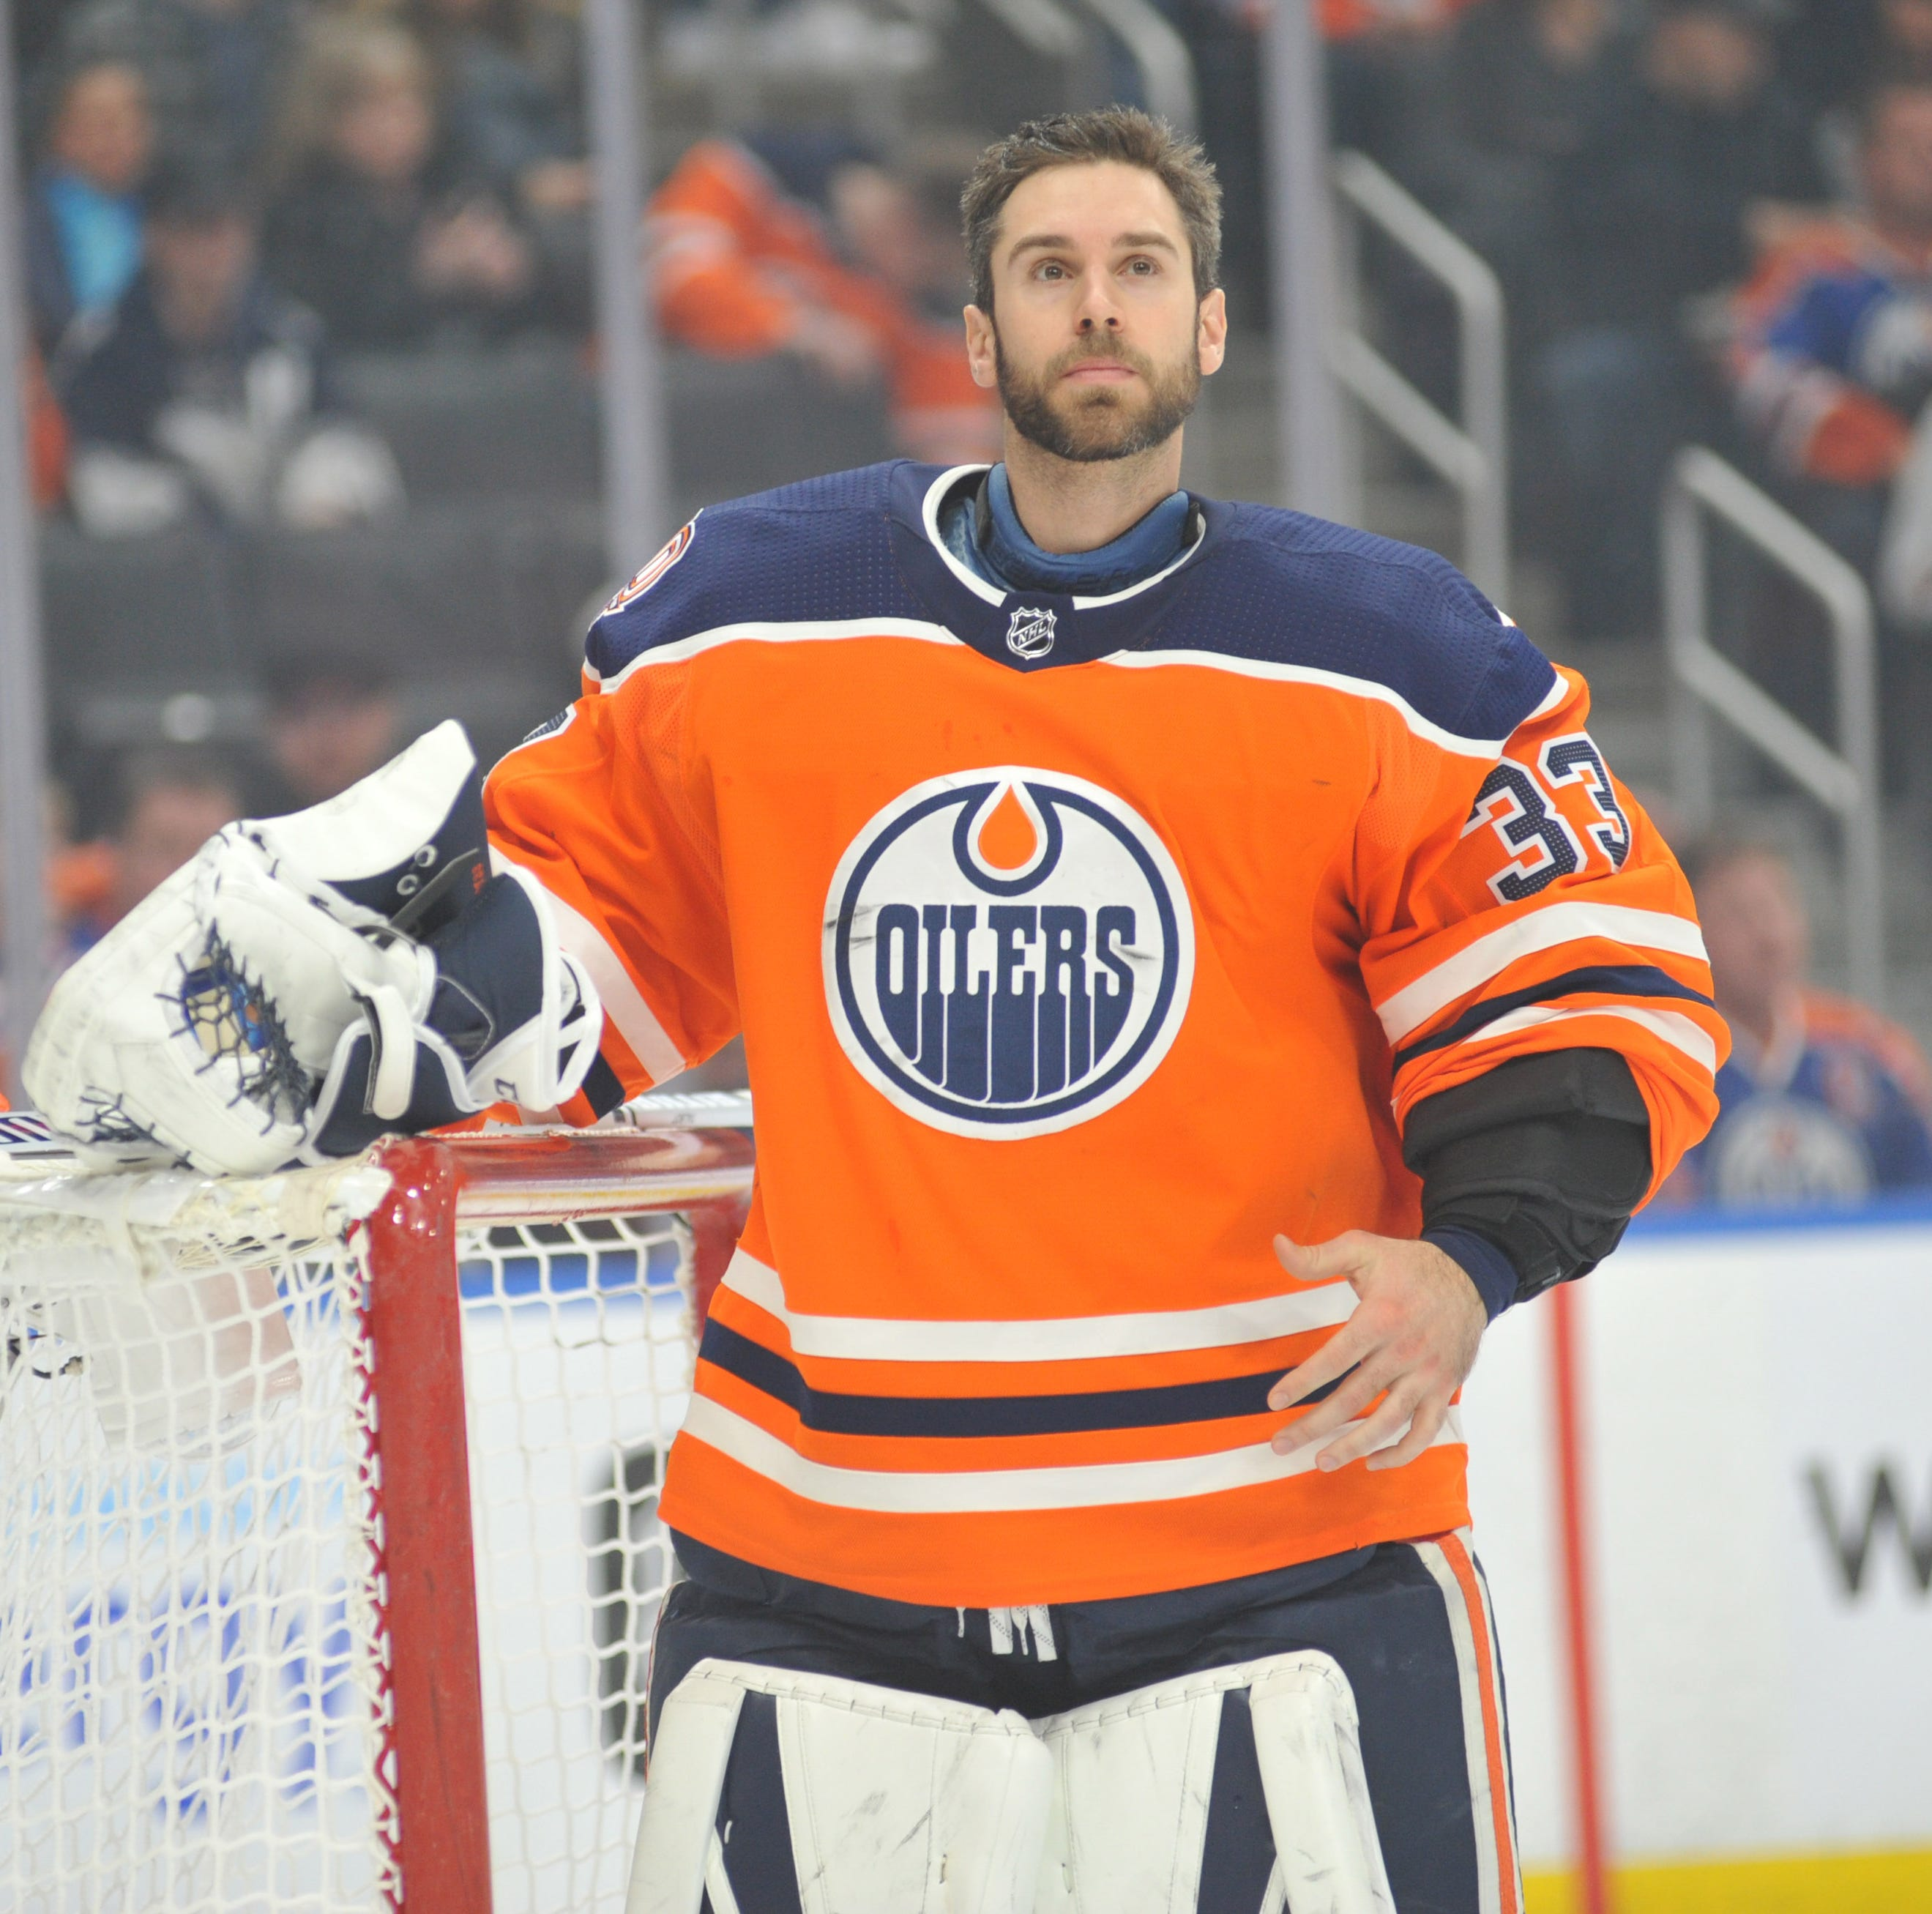 Cam Talbot 'very open' to signing extension after Flyers traded for him